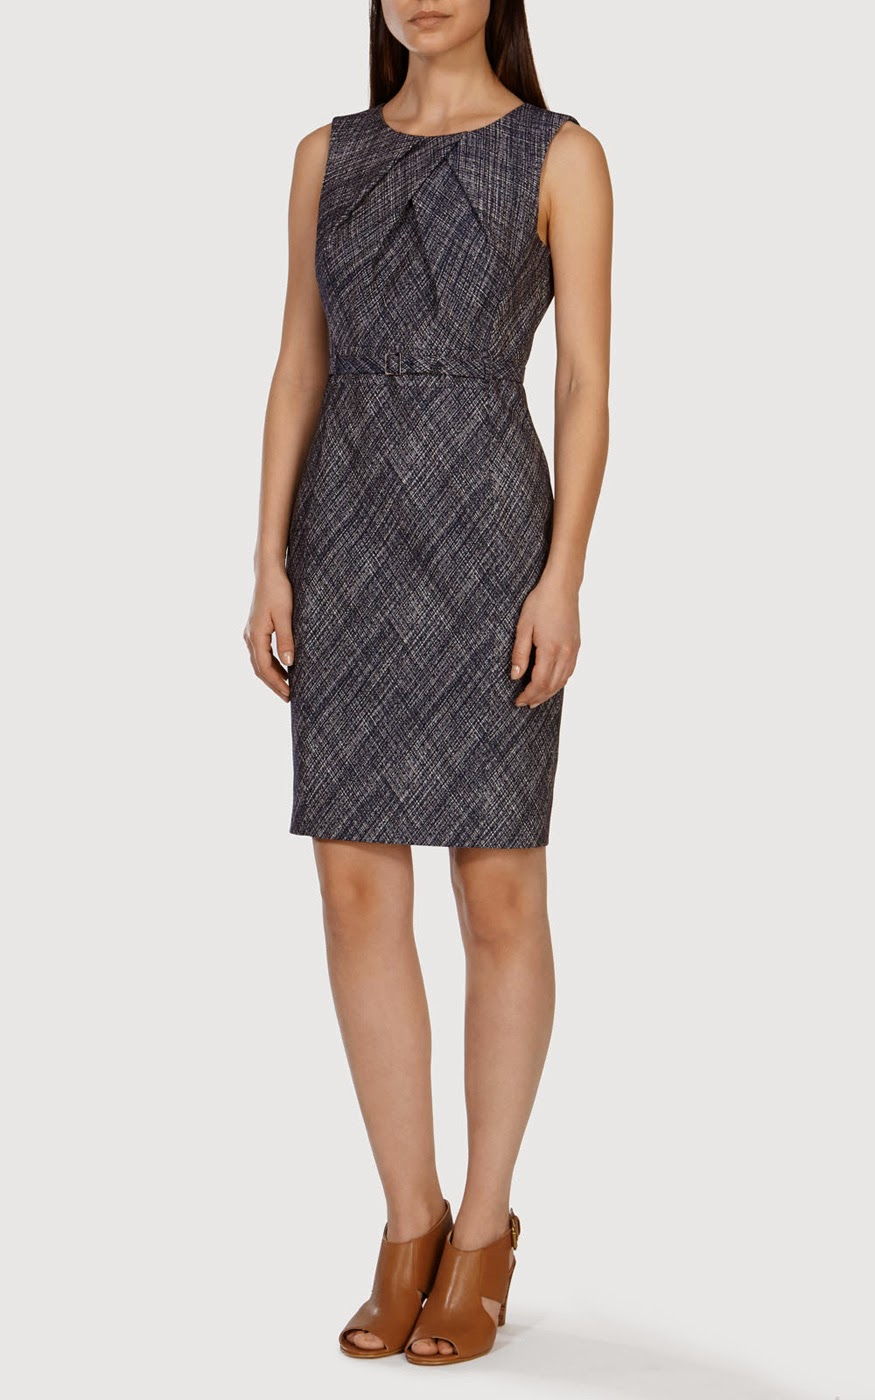 Karen Millen Cross Hatch Jacquard Pencil Dress.jpg